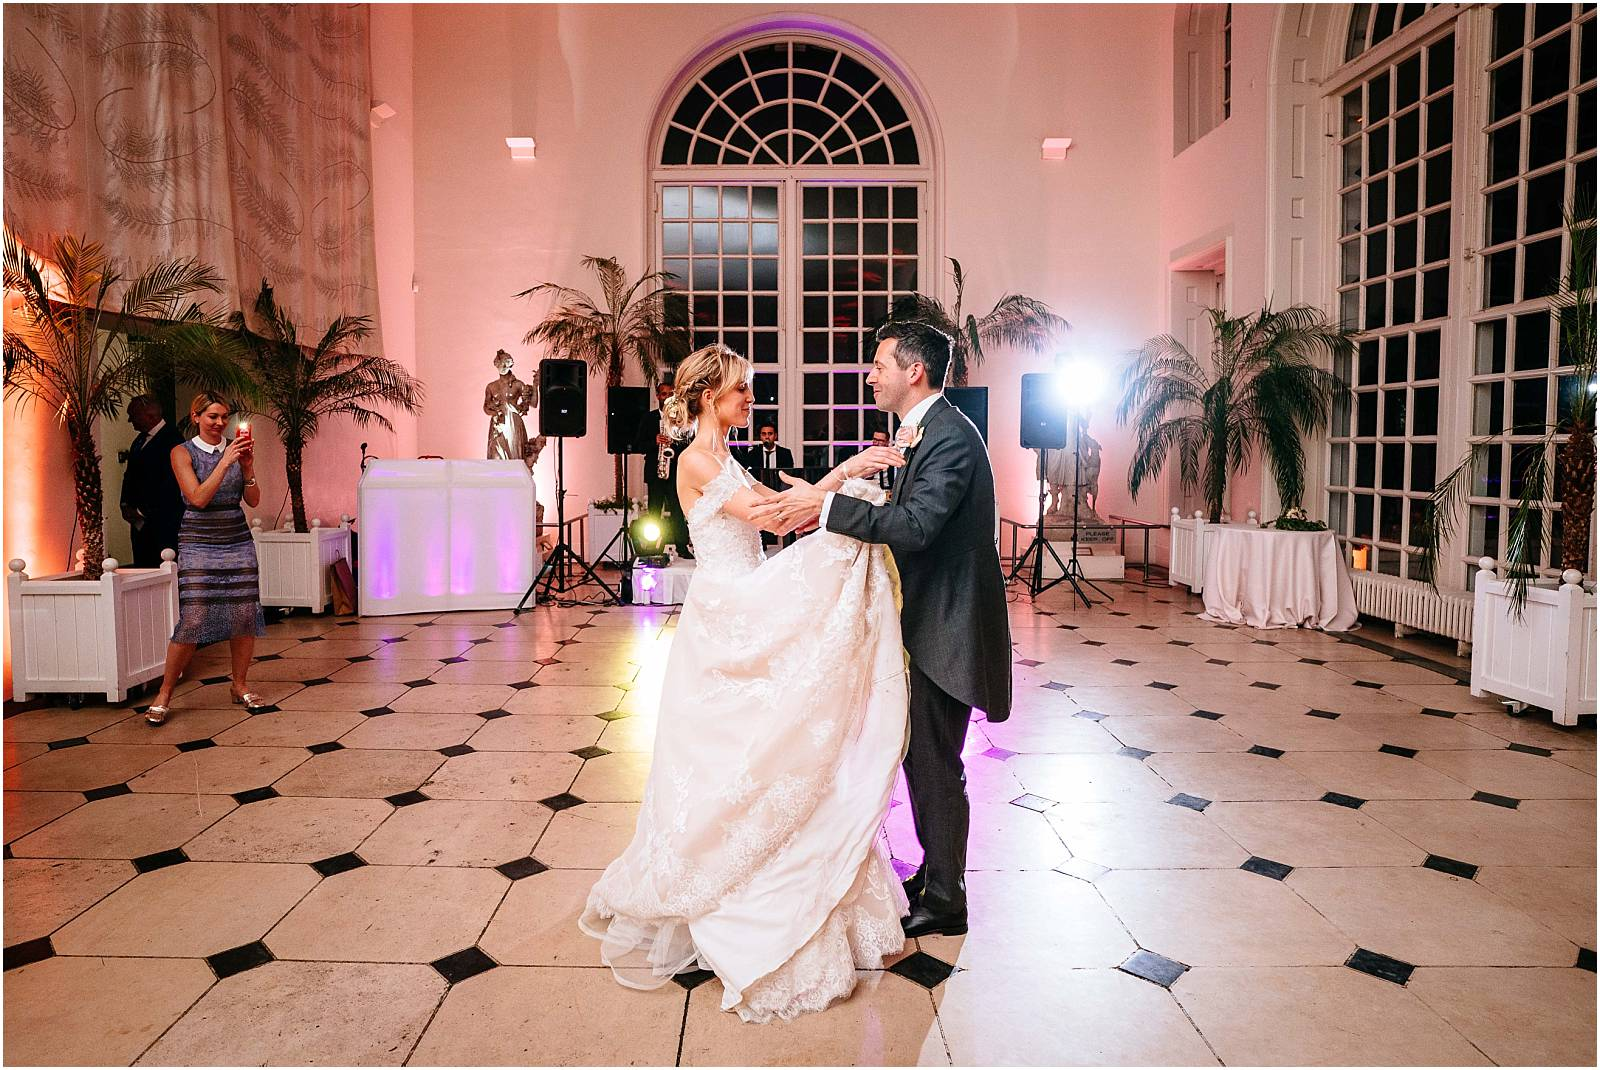 The first dance at the orangery